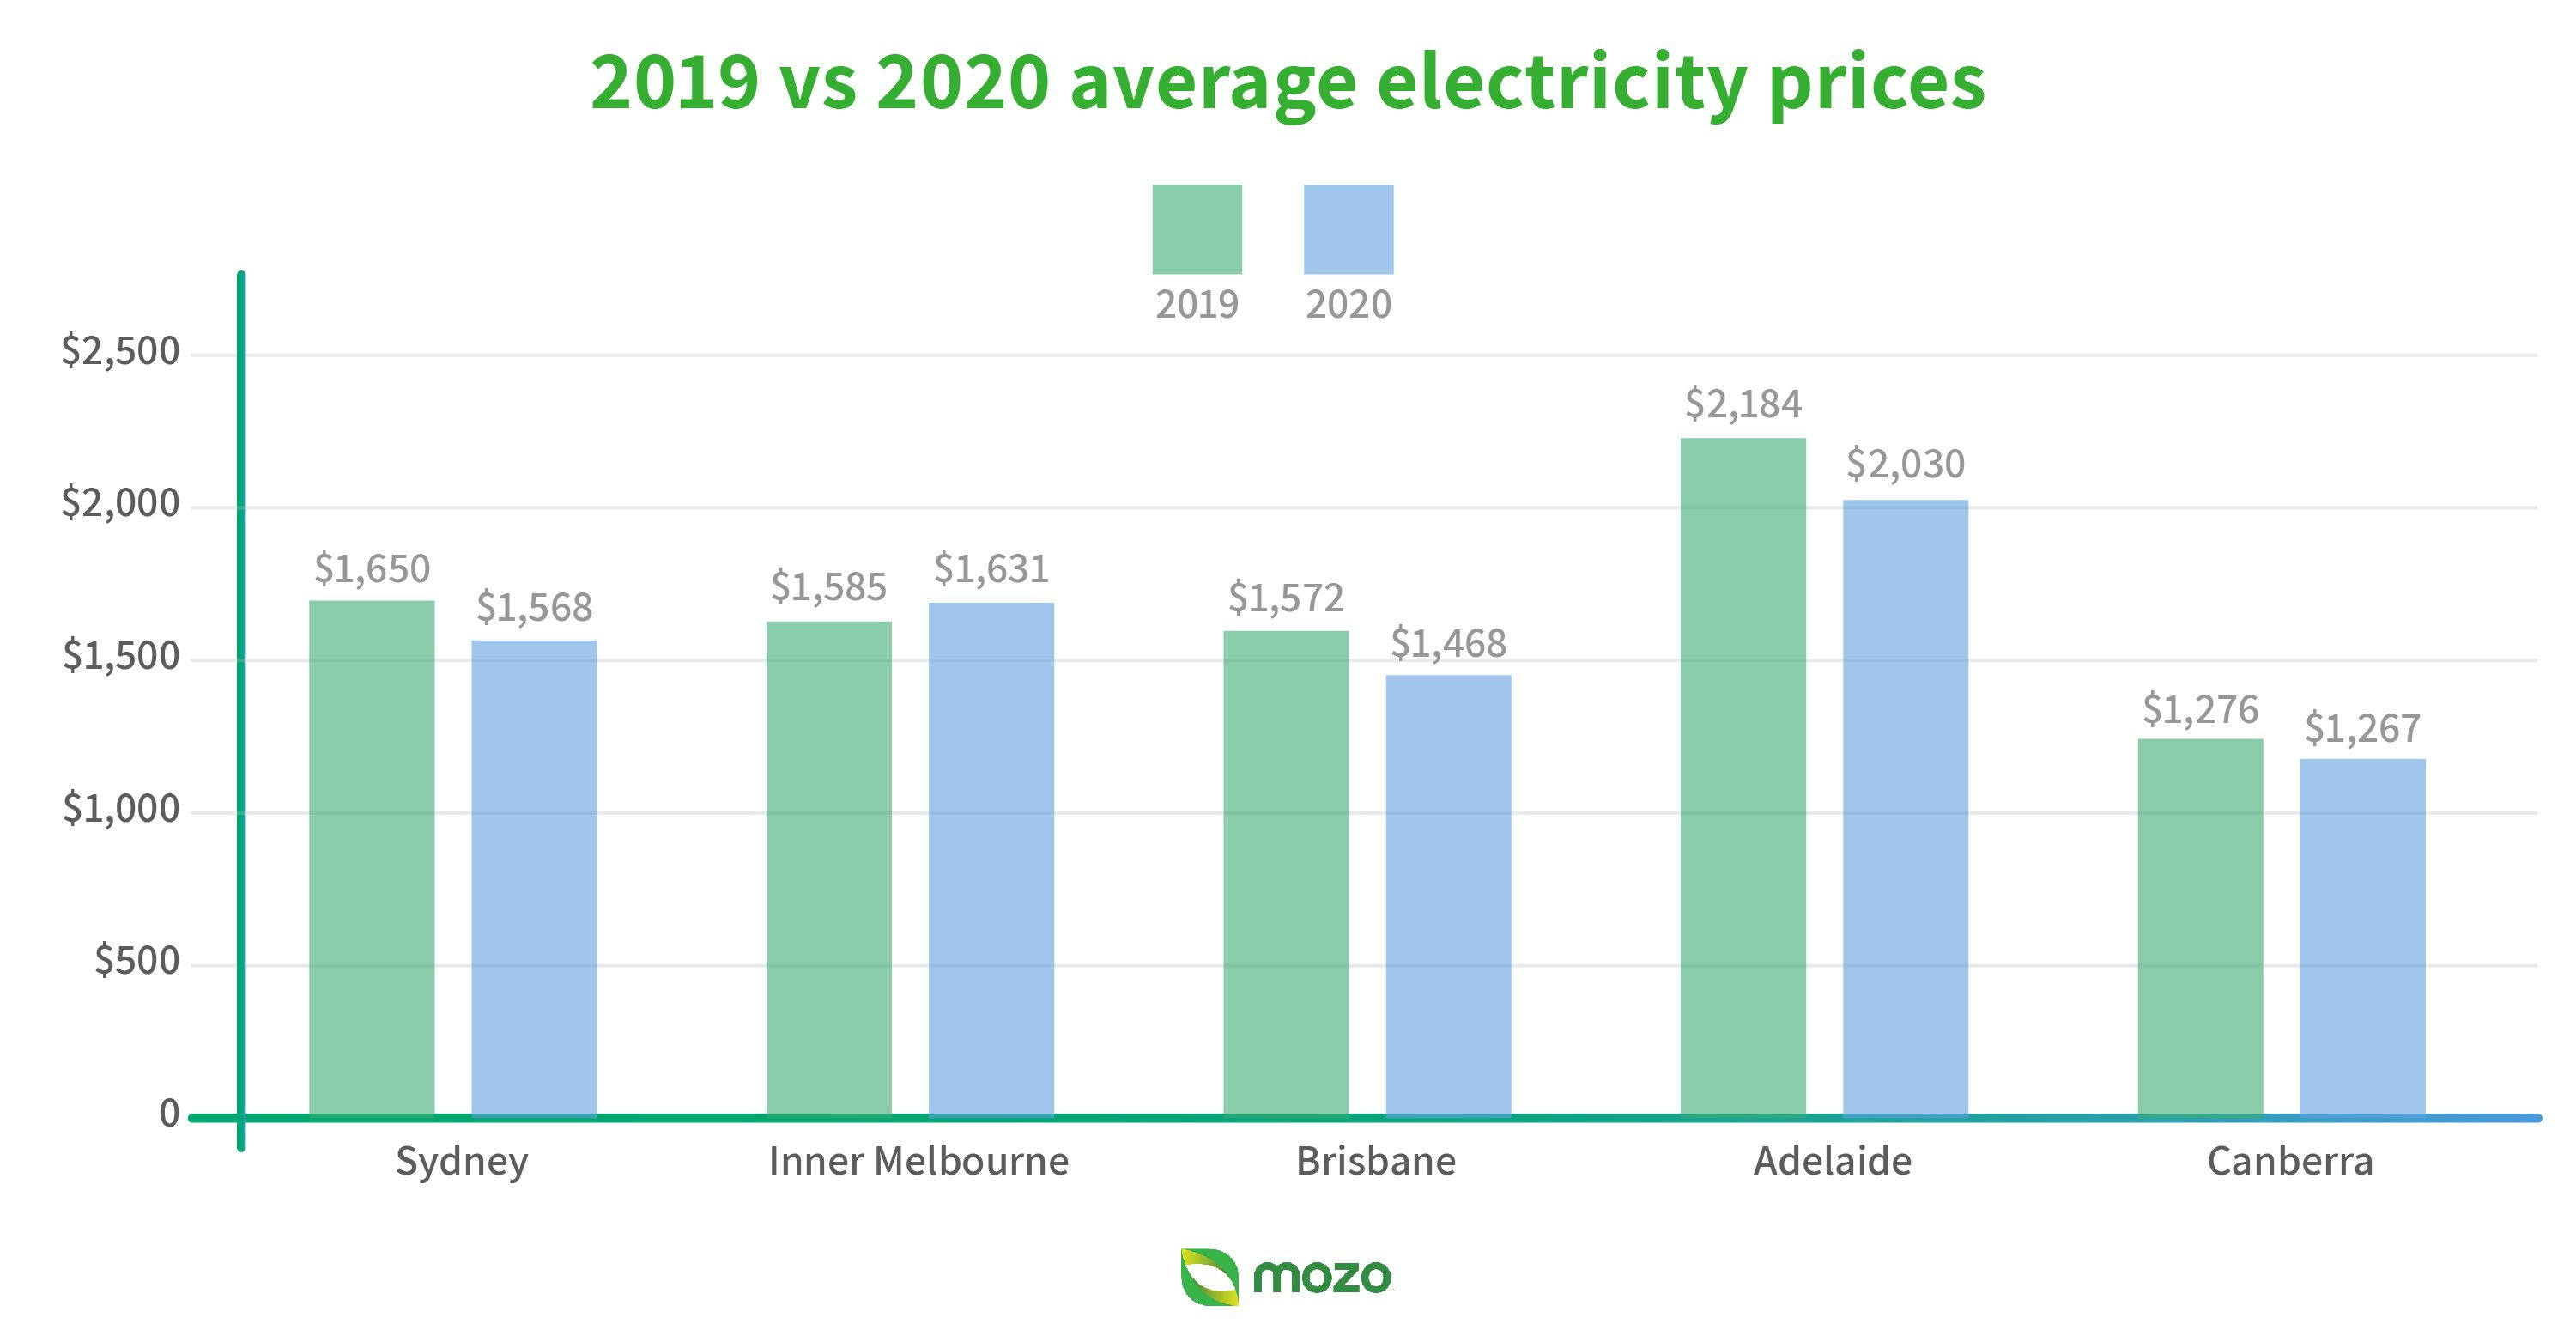 Graph showing 2019 vs 2020 average electricity prices